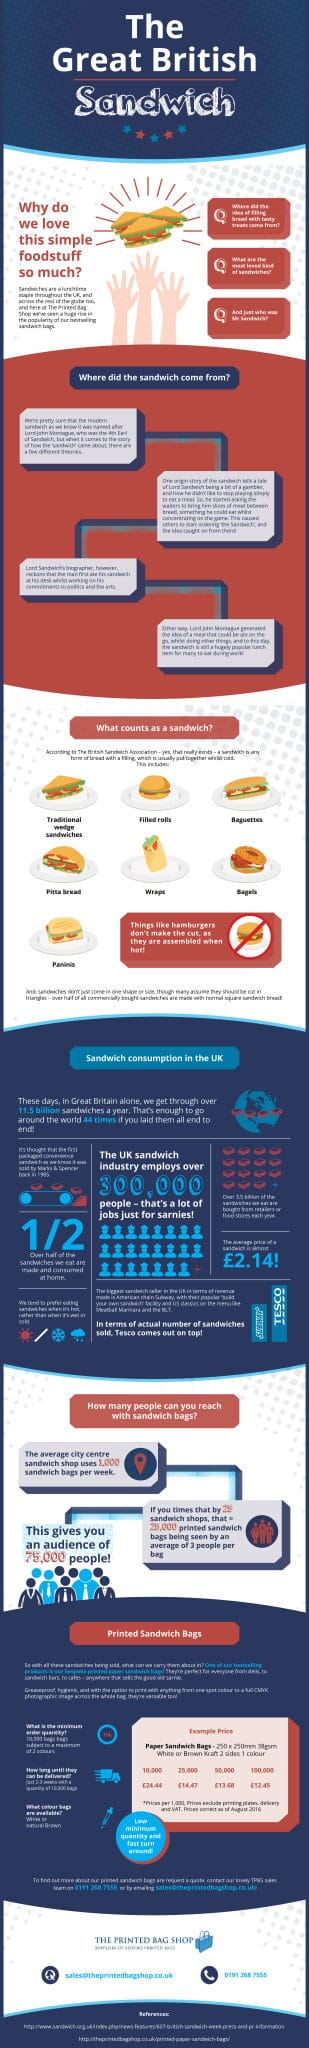 TPBS_sandwich_Bags_Infographic_V4